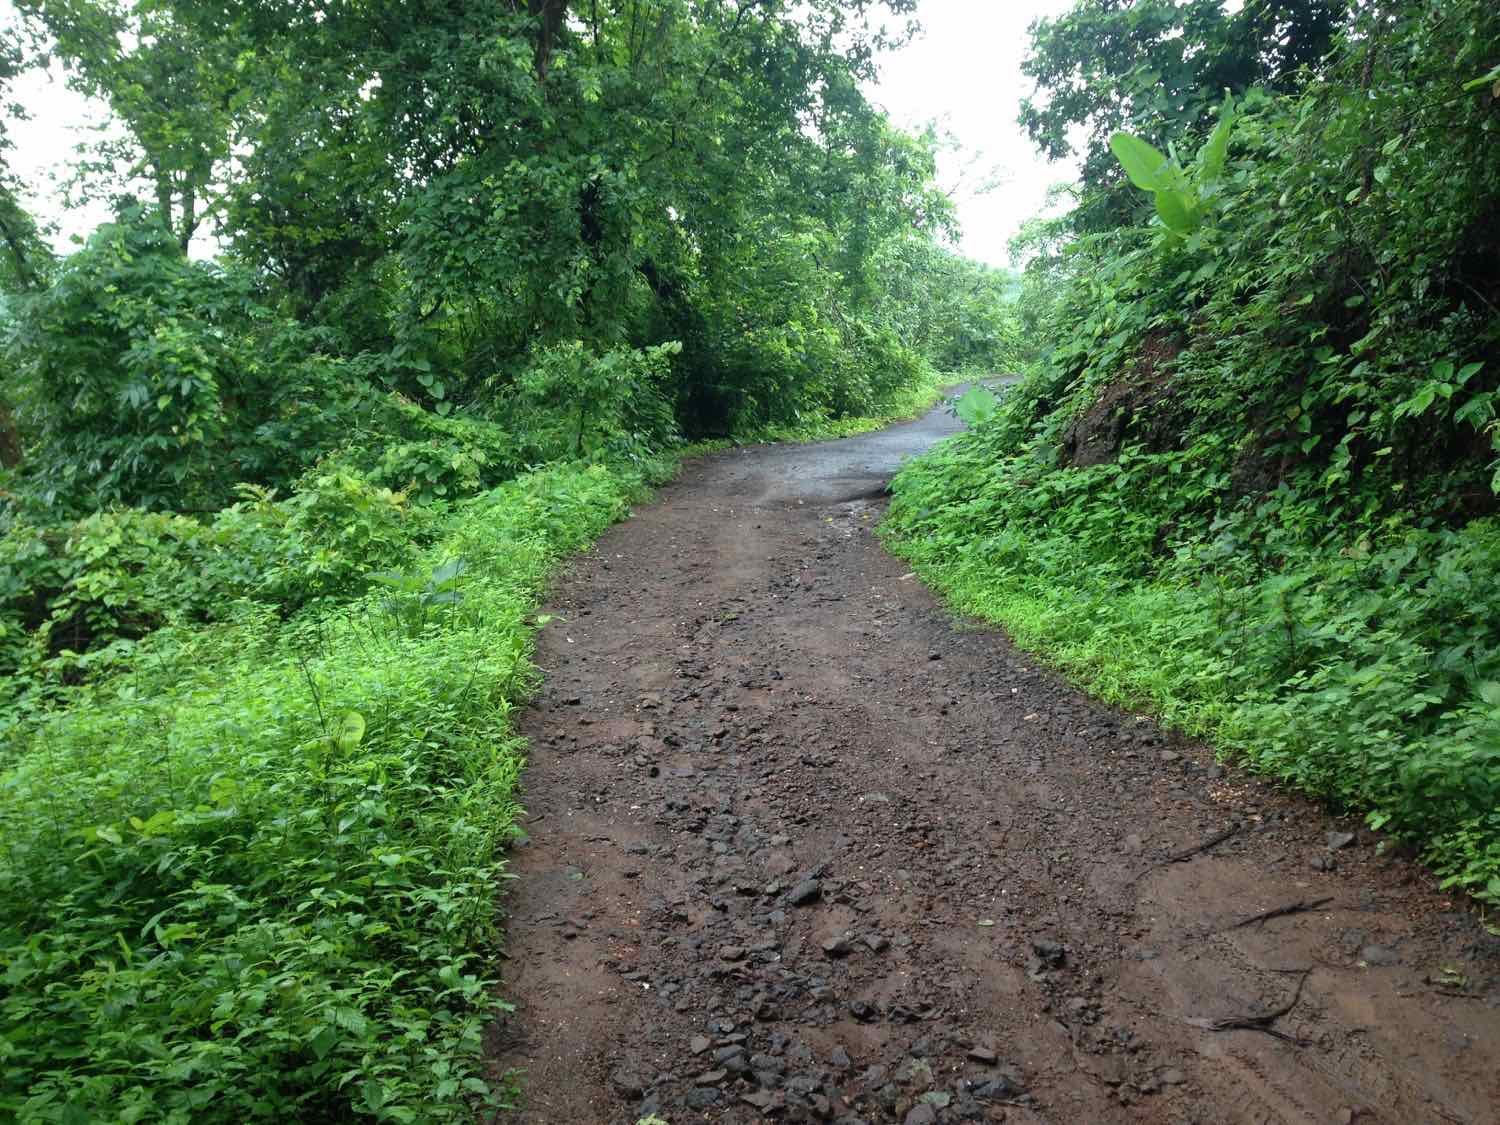 Metalled road to Peth turns into a dirt track